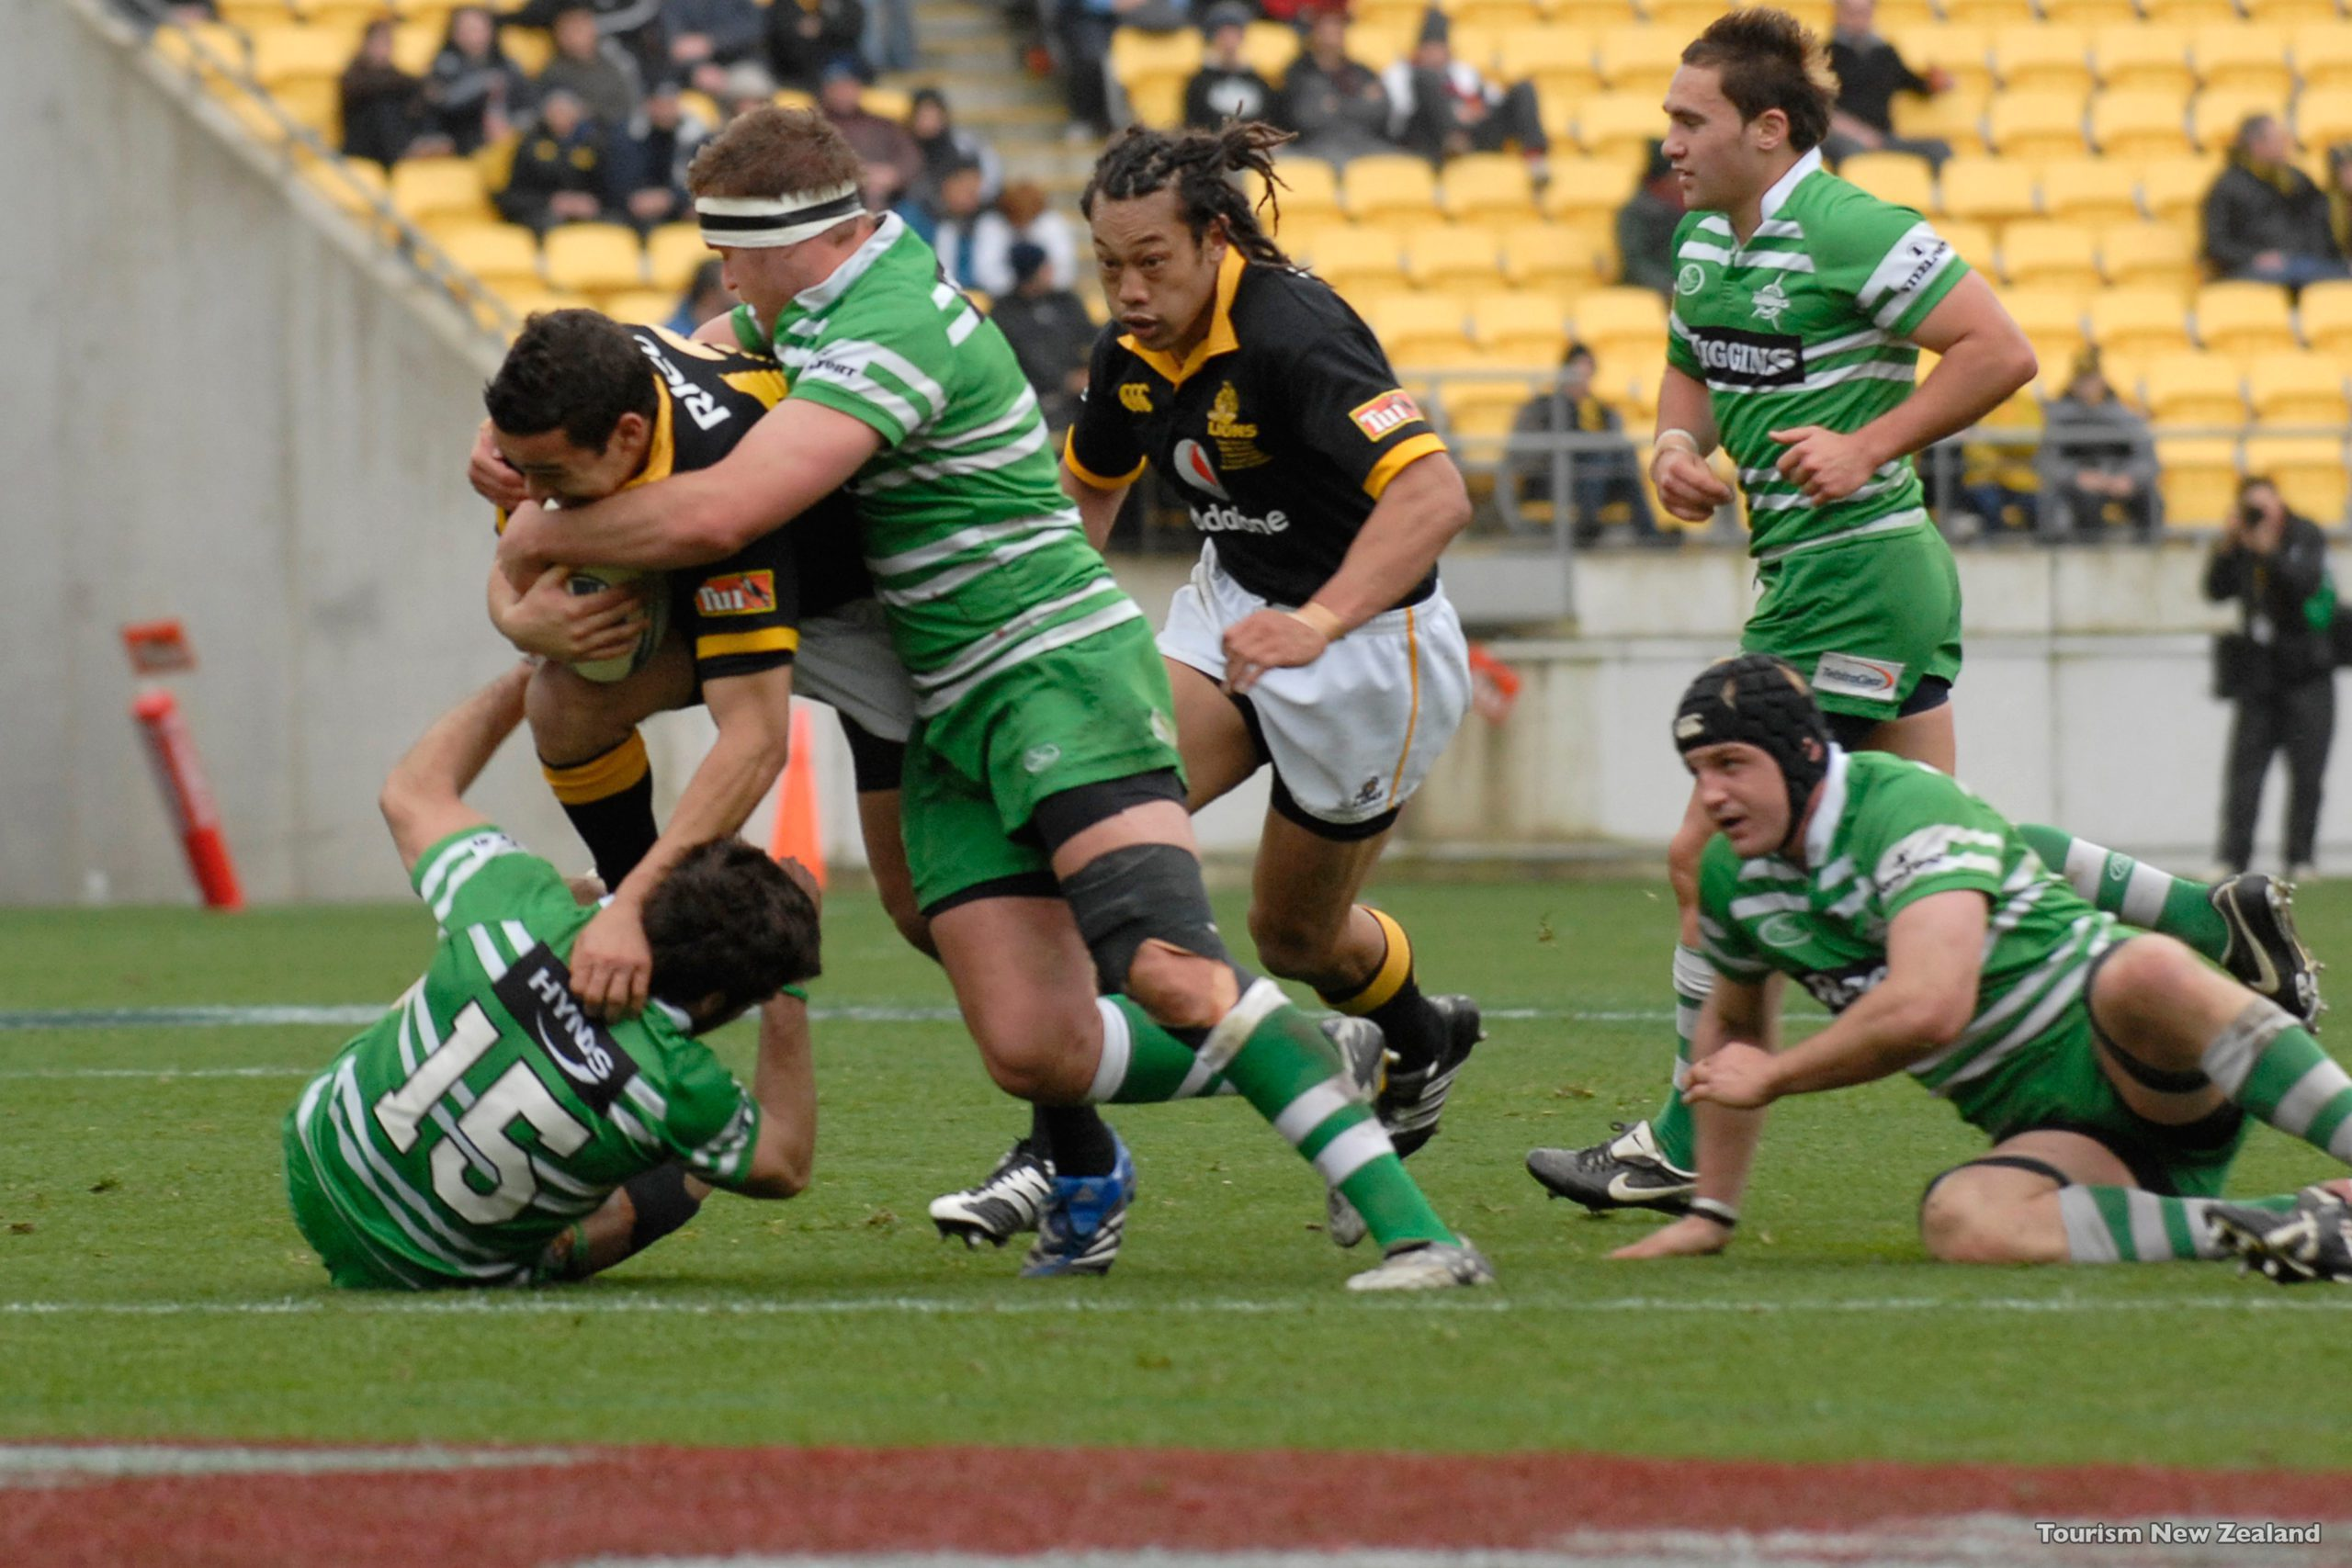 New Zealand's All Black playing at Westpac Stadium in Wellington